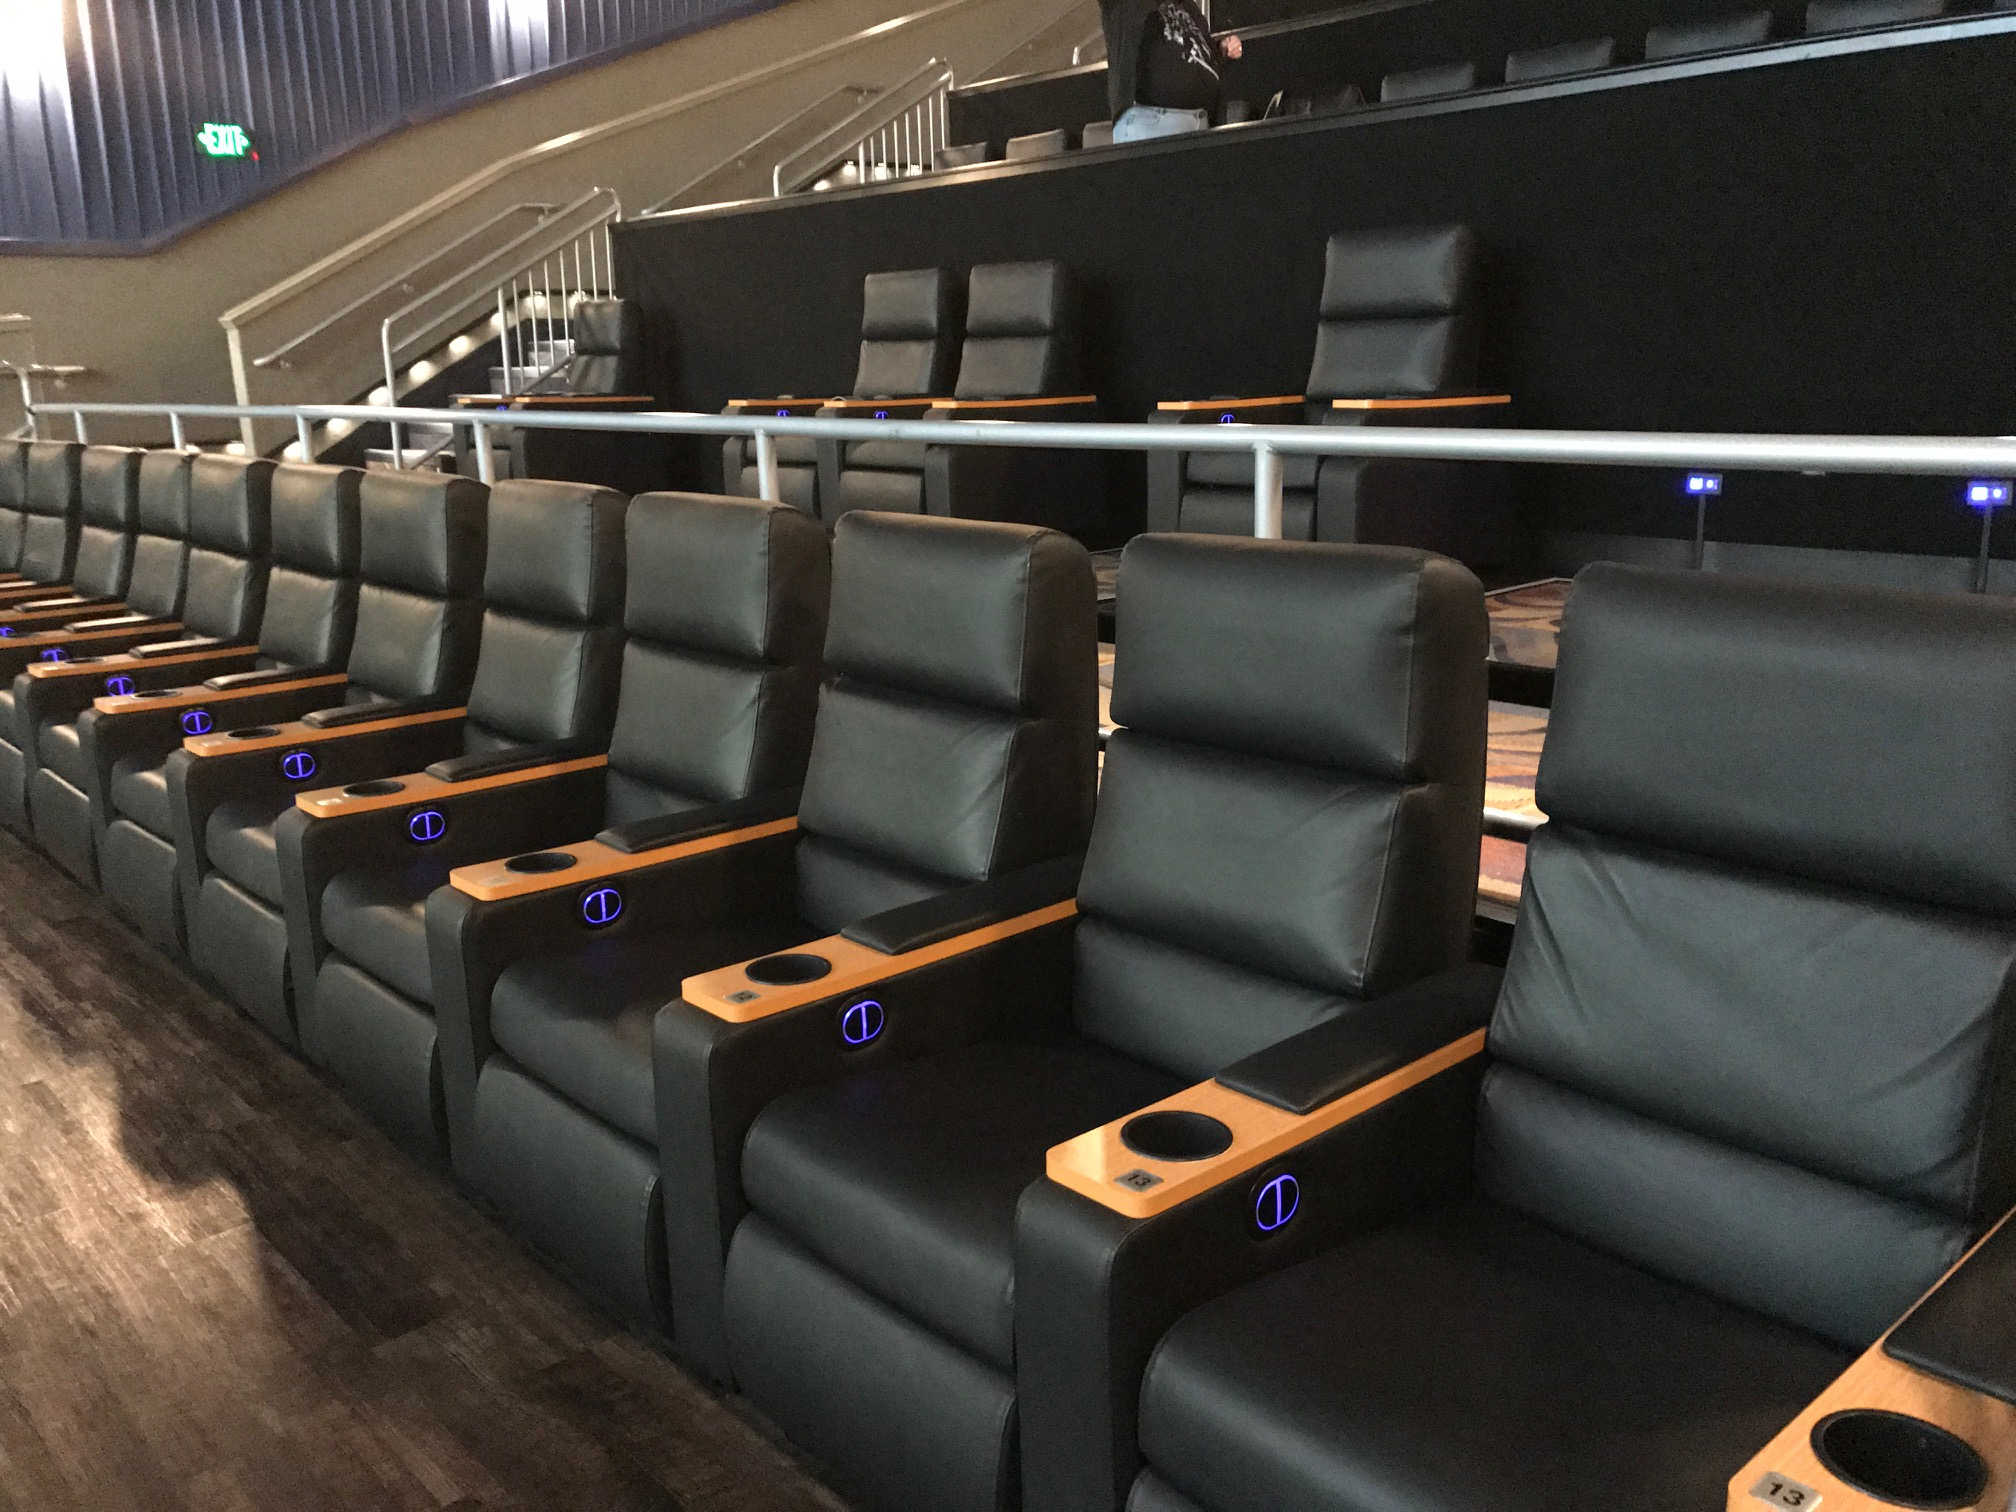 Regal has finished adding king-sized recliners inside theaters at the Walden Galleria (pictured) and Quaker Crossing. (Toni Ruberto/Buffalo News)